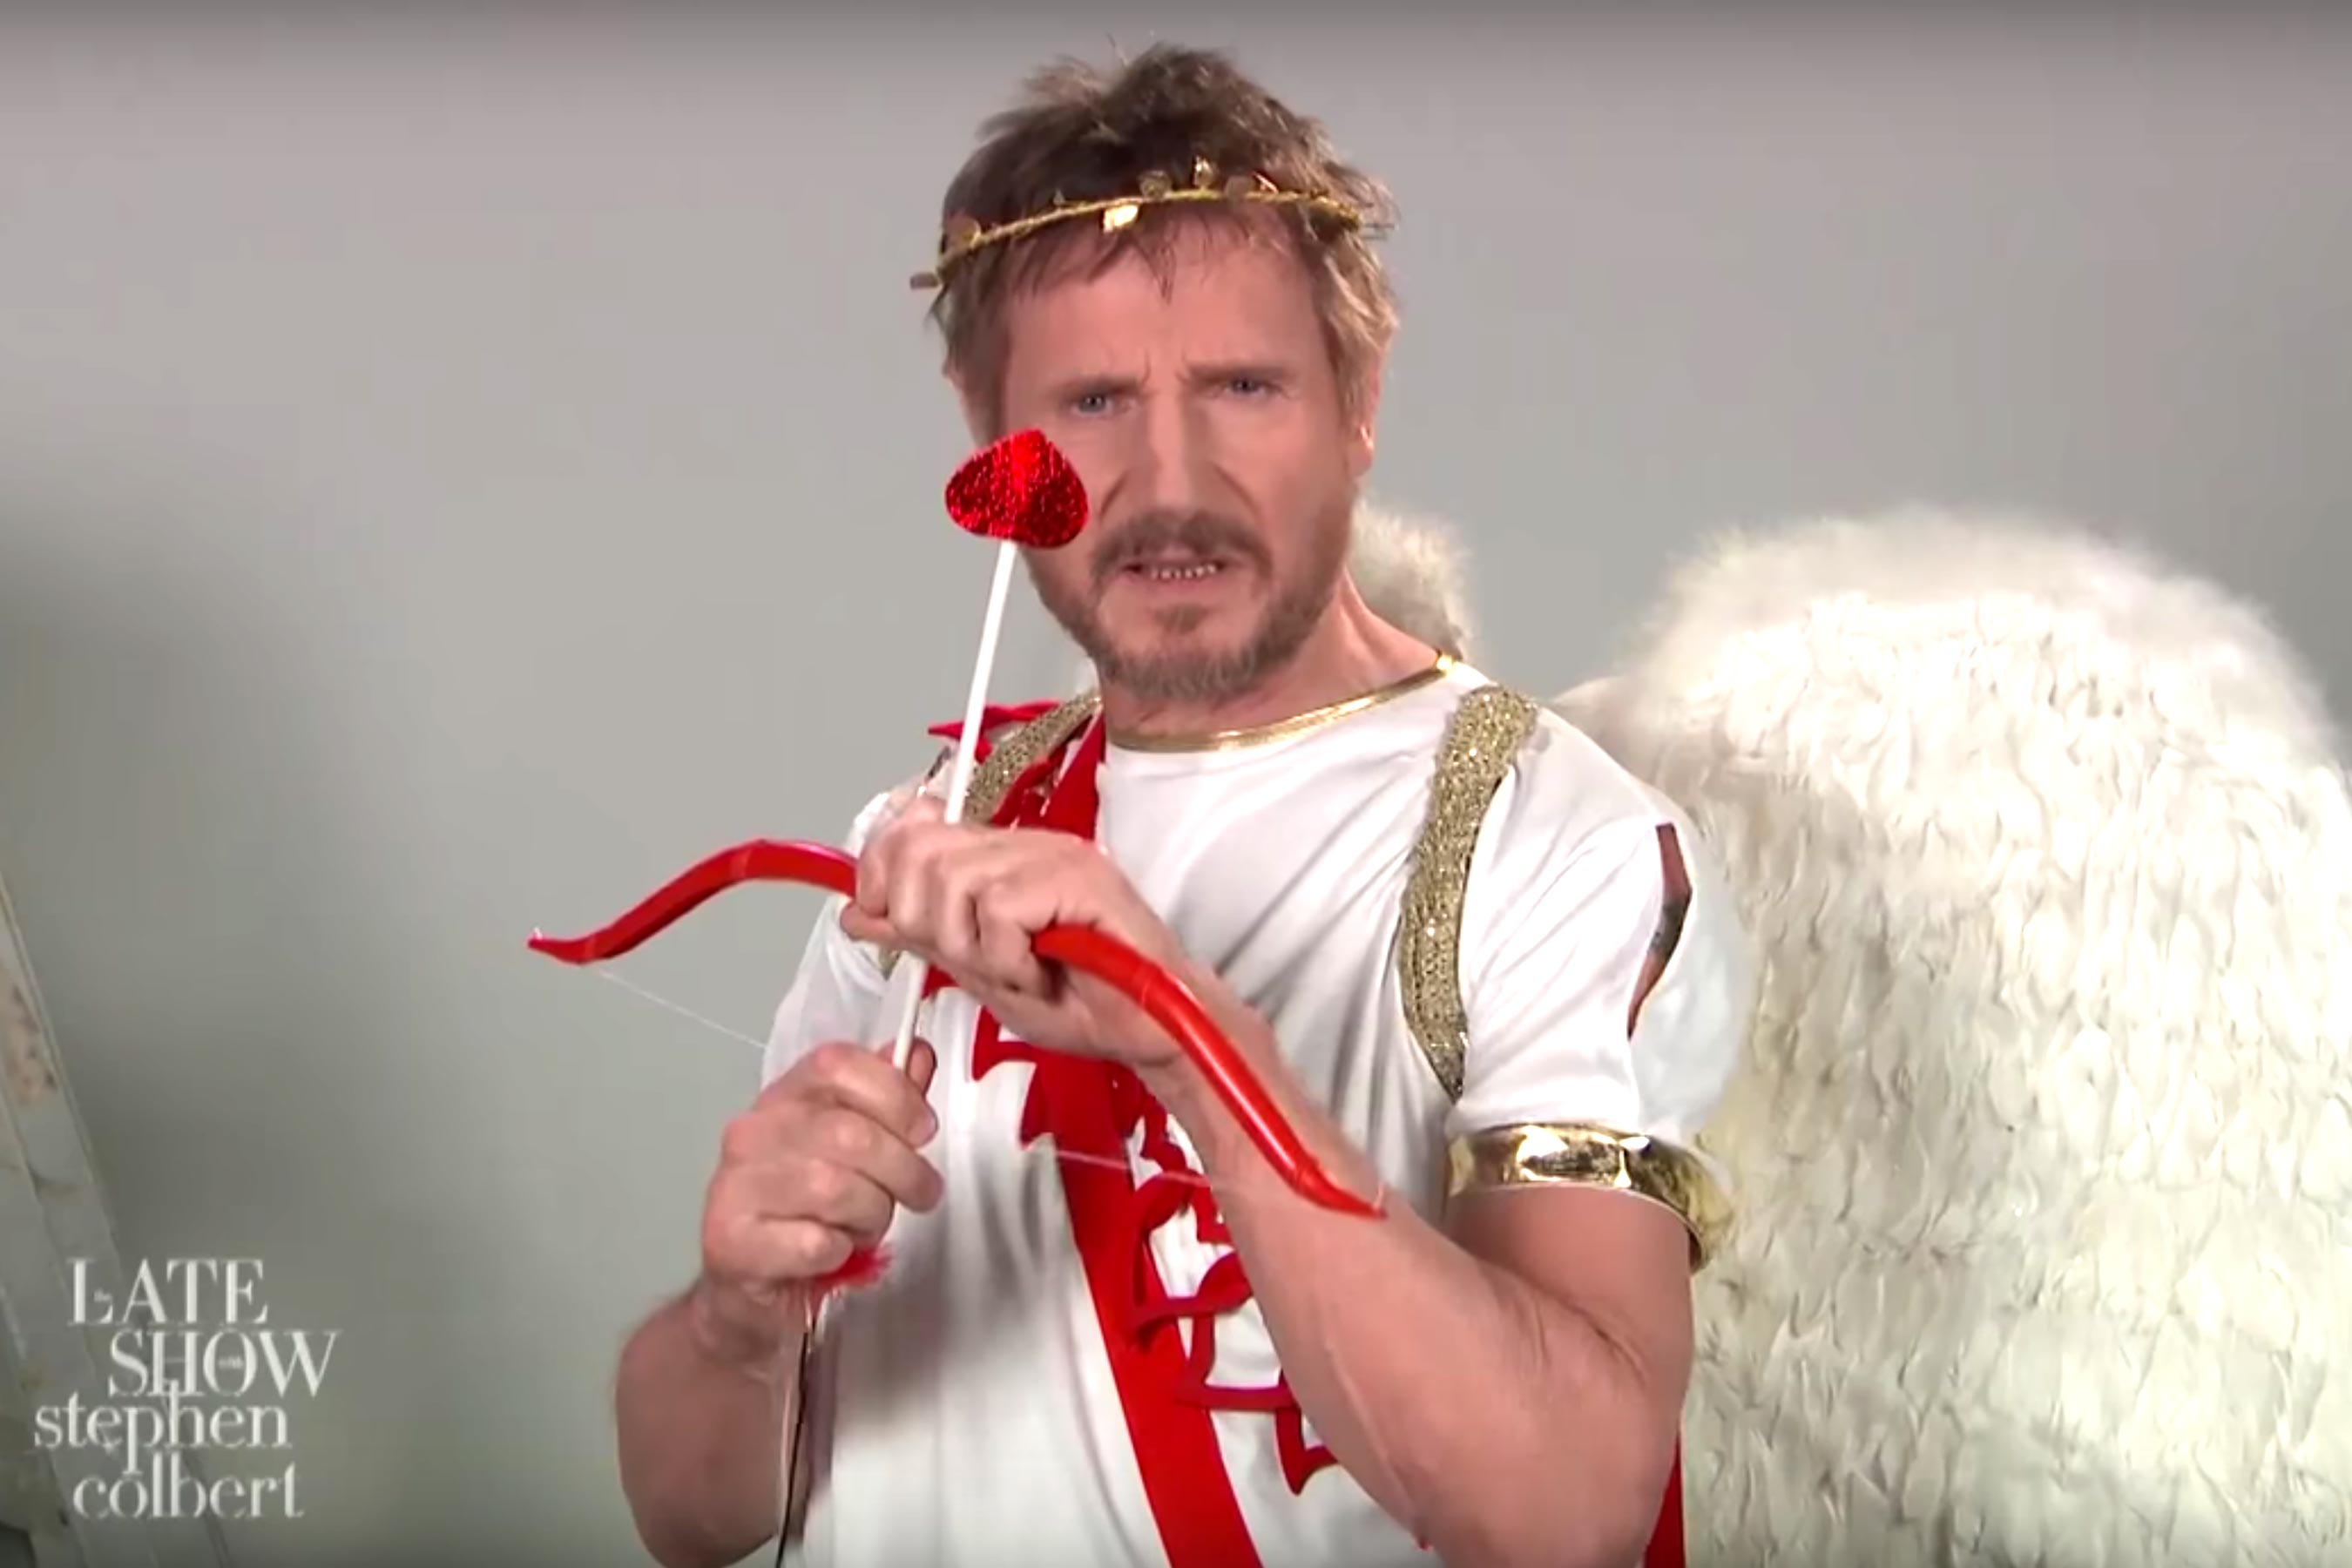 Late Show: Liam Neeson portrays Cupid as an assassin in audition